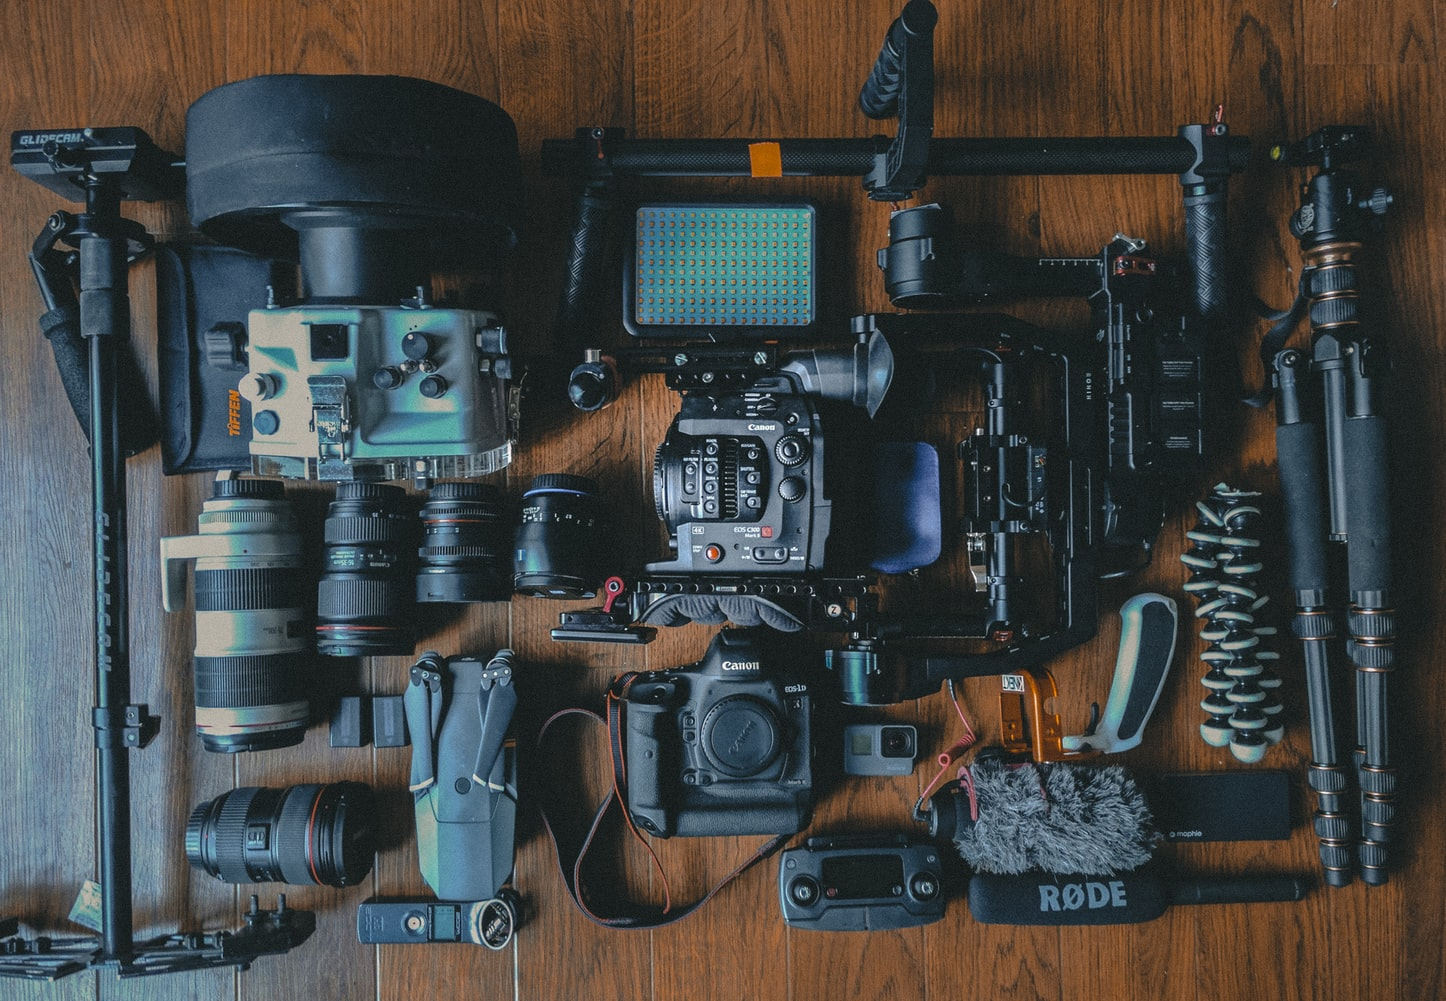 Photo of a camera and camera accessories